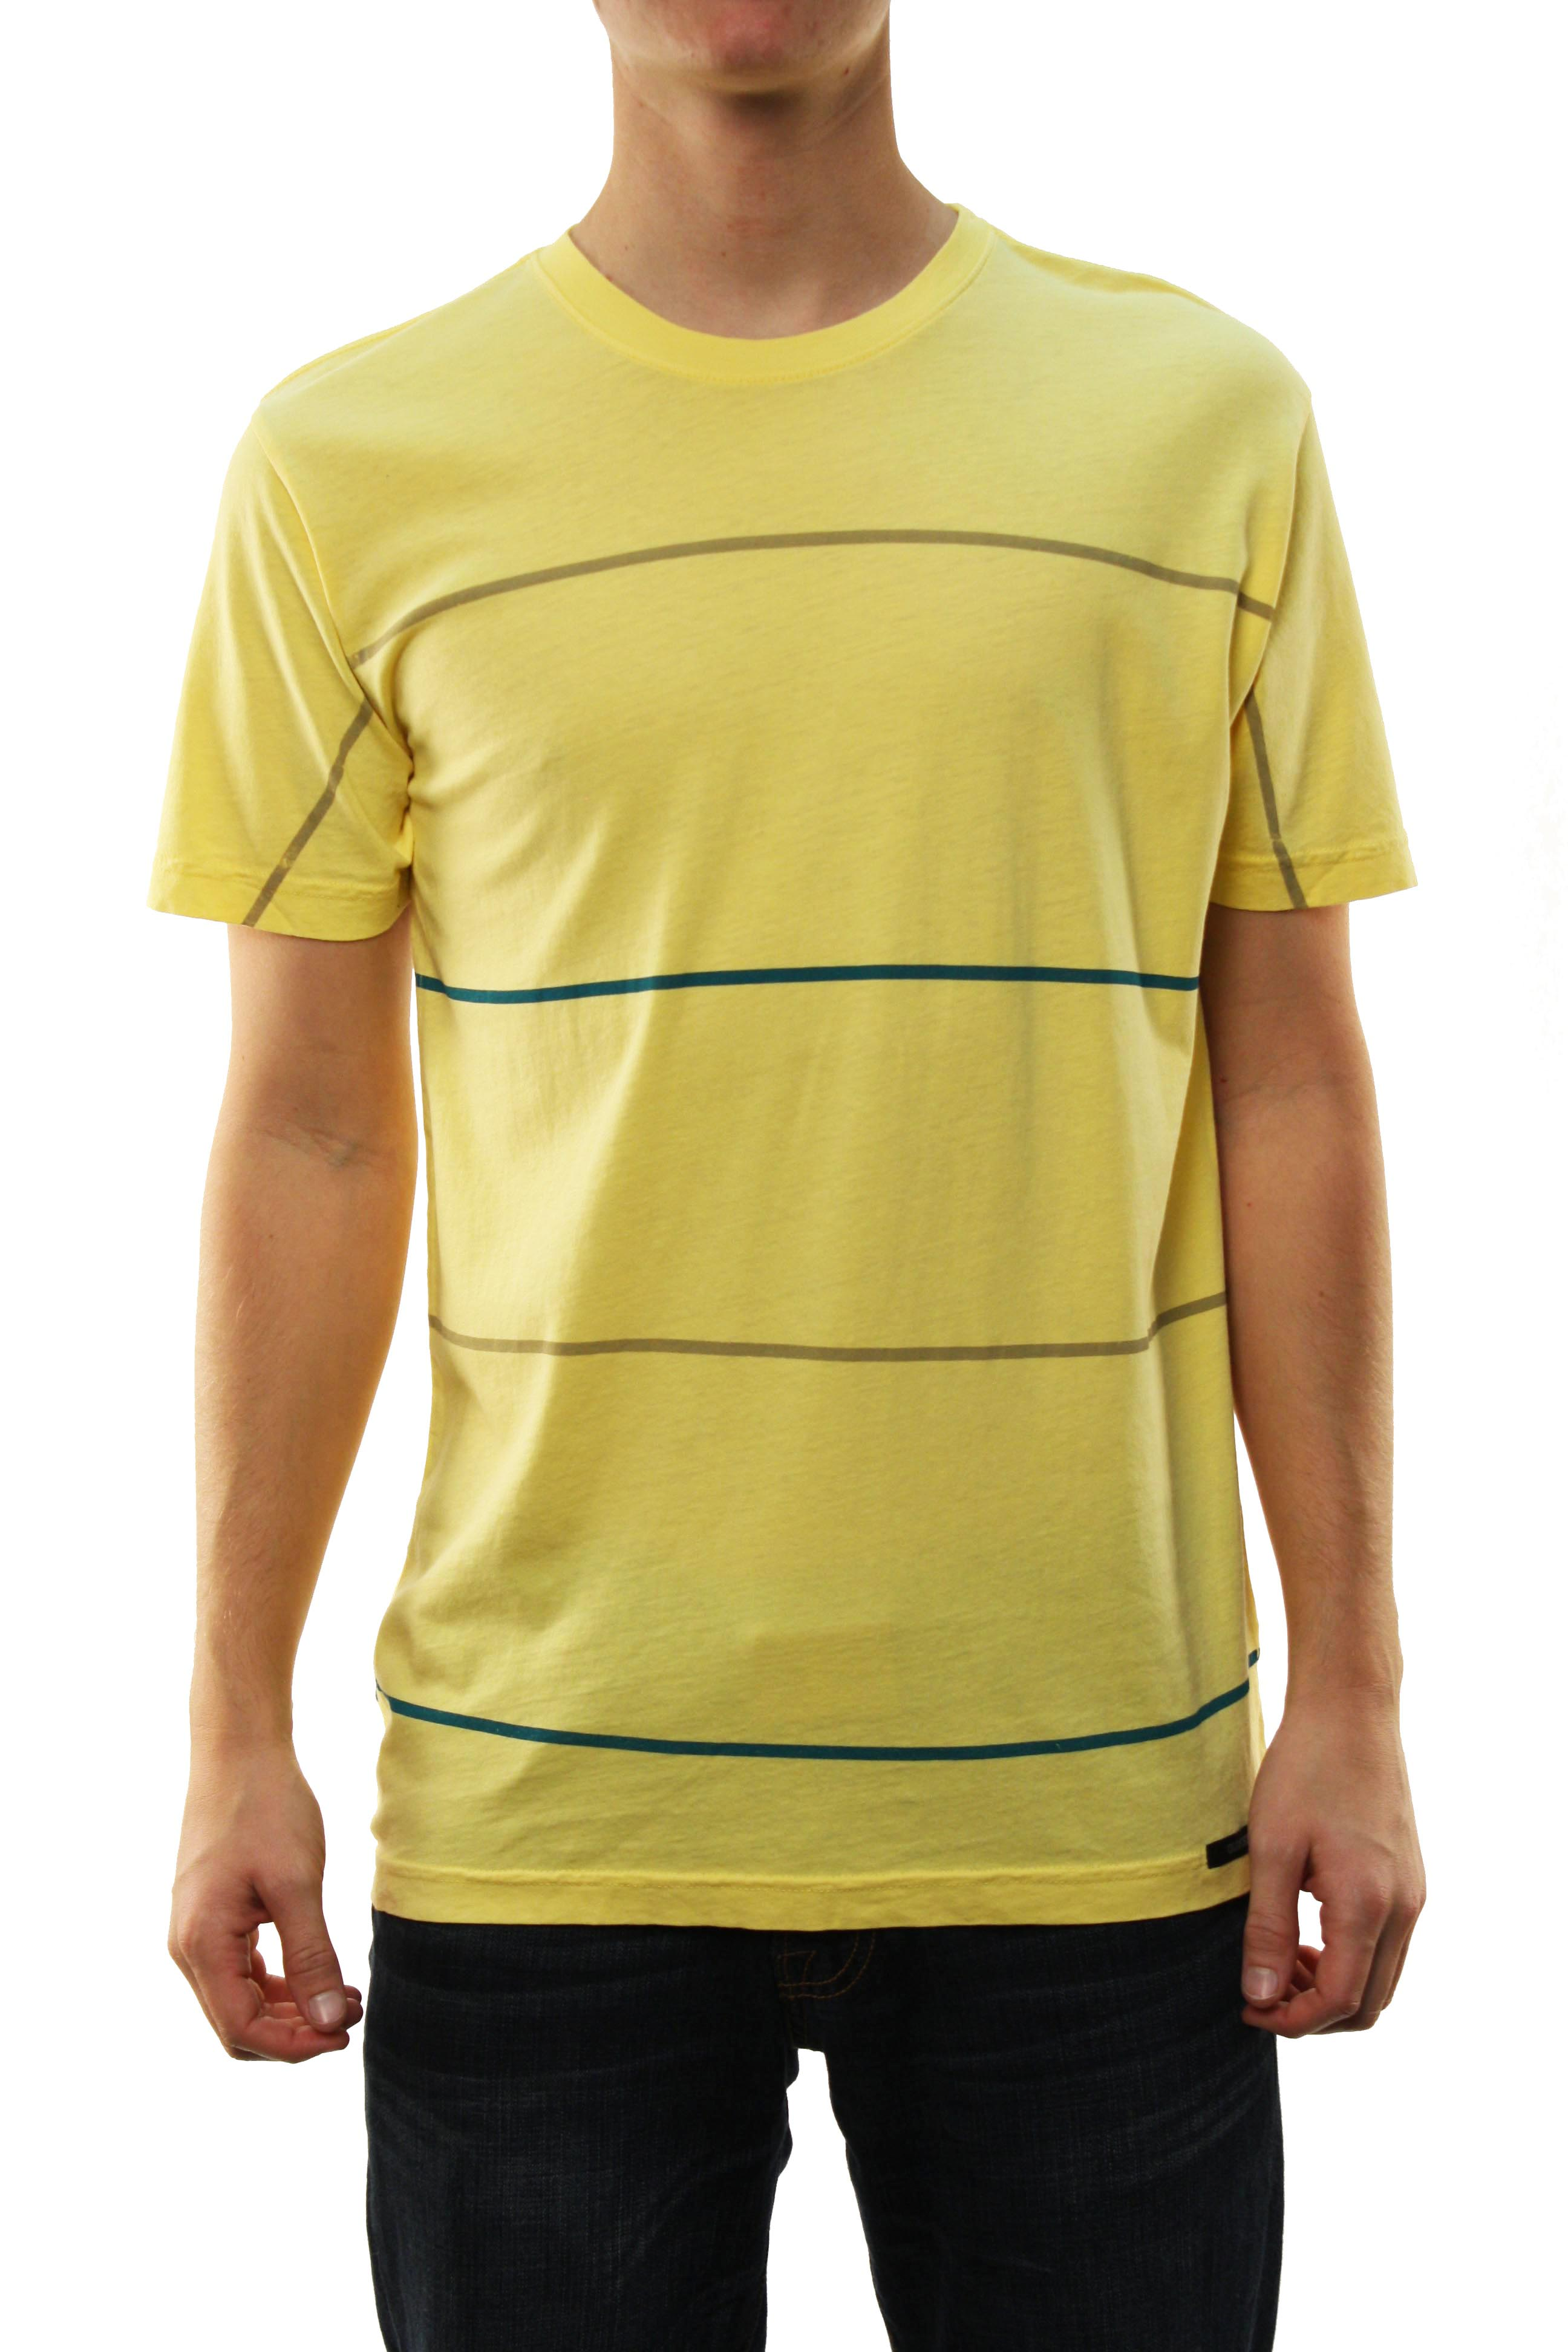 "Quiksilver Men's ""Starbird MTZ"" T-Shirt Yellow 112TZLL3-LYL at Sears.com"